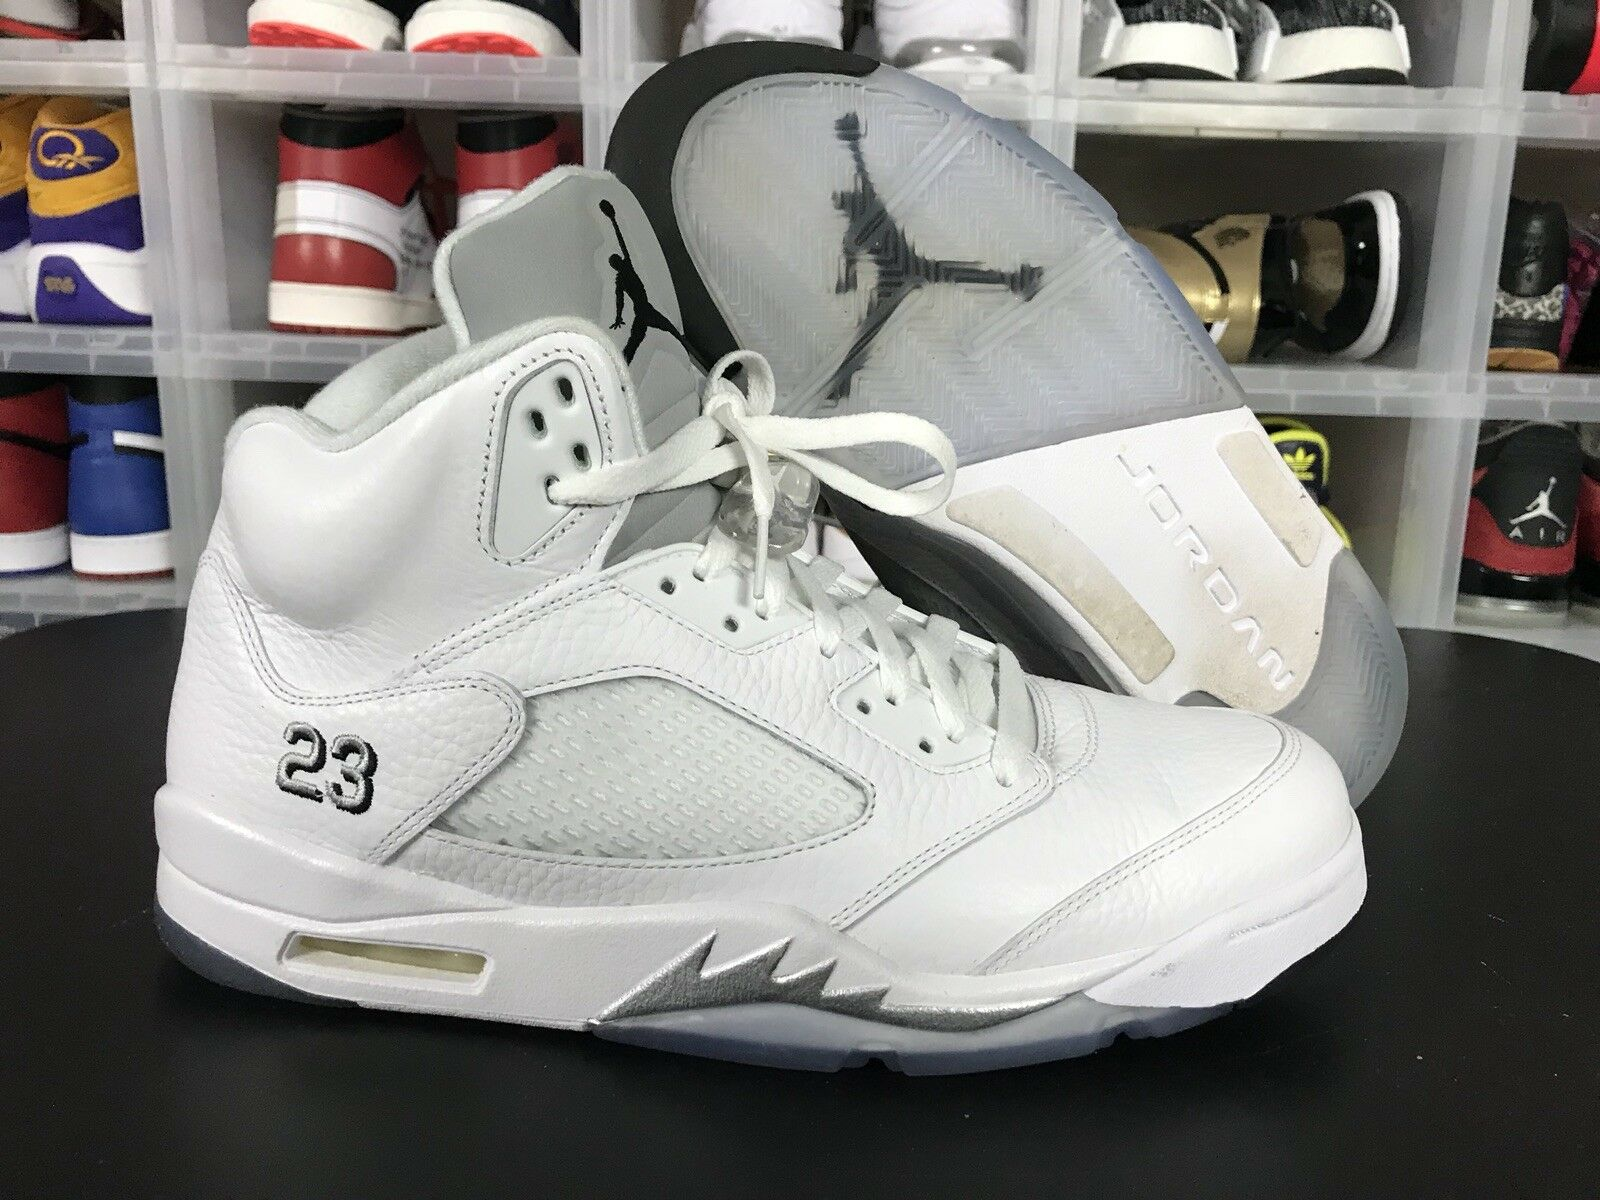 Air Jordan 5 Retro White Metallic 136027-130 sz 12 Fresh Prince Laney Supreme